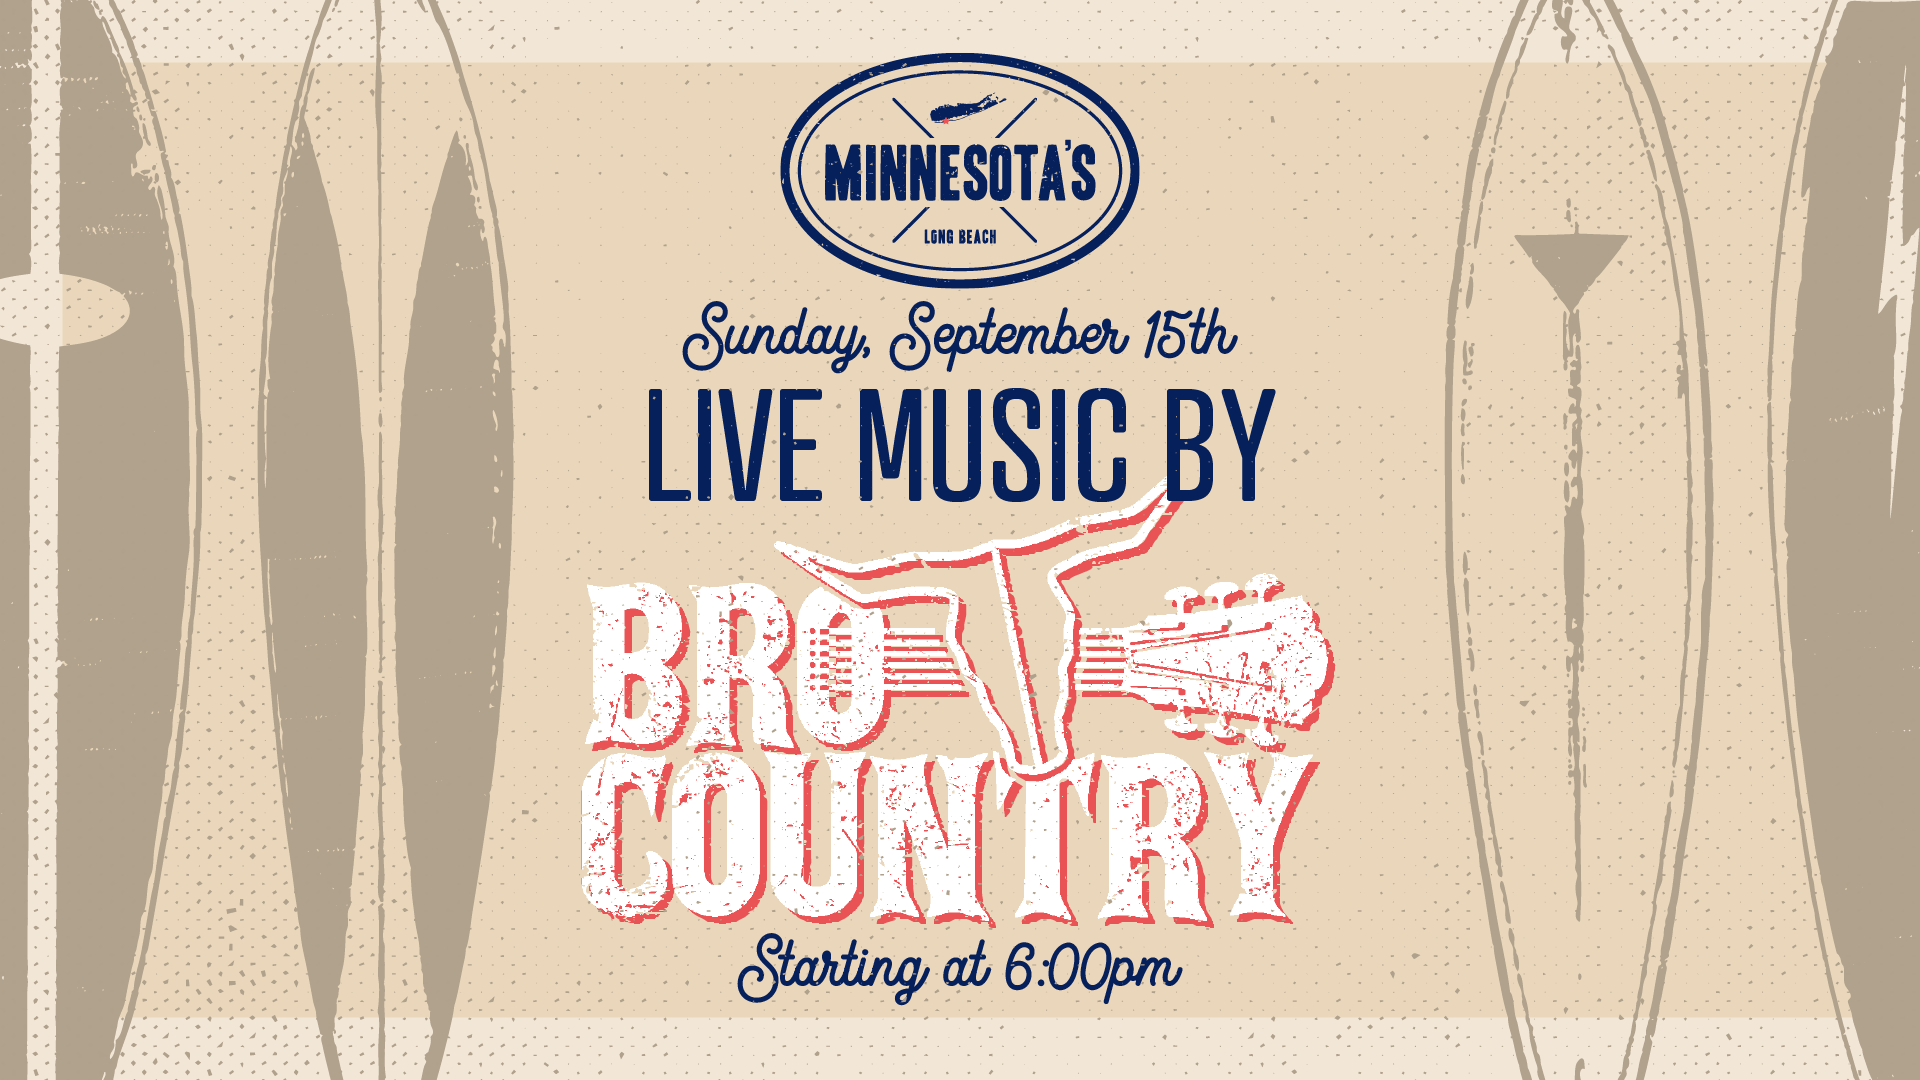 Live music with Bro Country at 6 PM on Sunday, Septmeber 15th